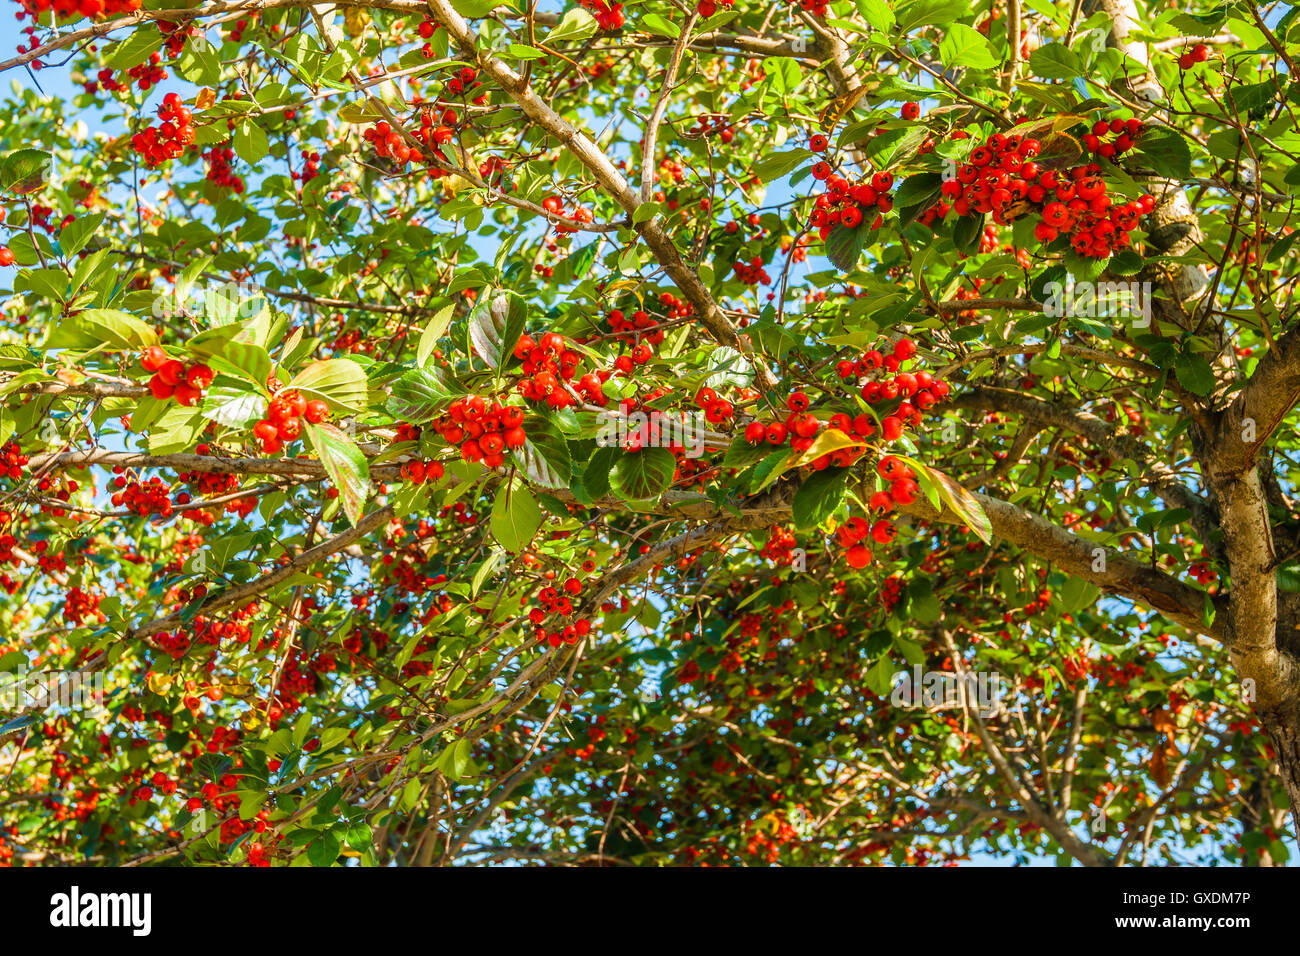 Red hawthorn berries on a still green tree in autumn. Hawthorn tree is considered an elf tree so do not cut it... - Stock Image